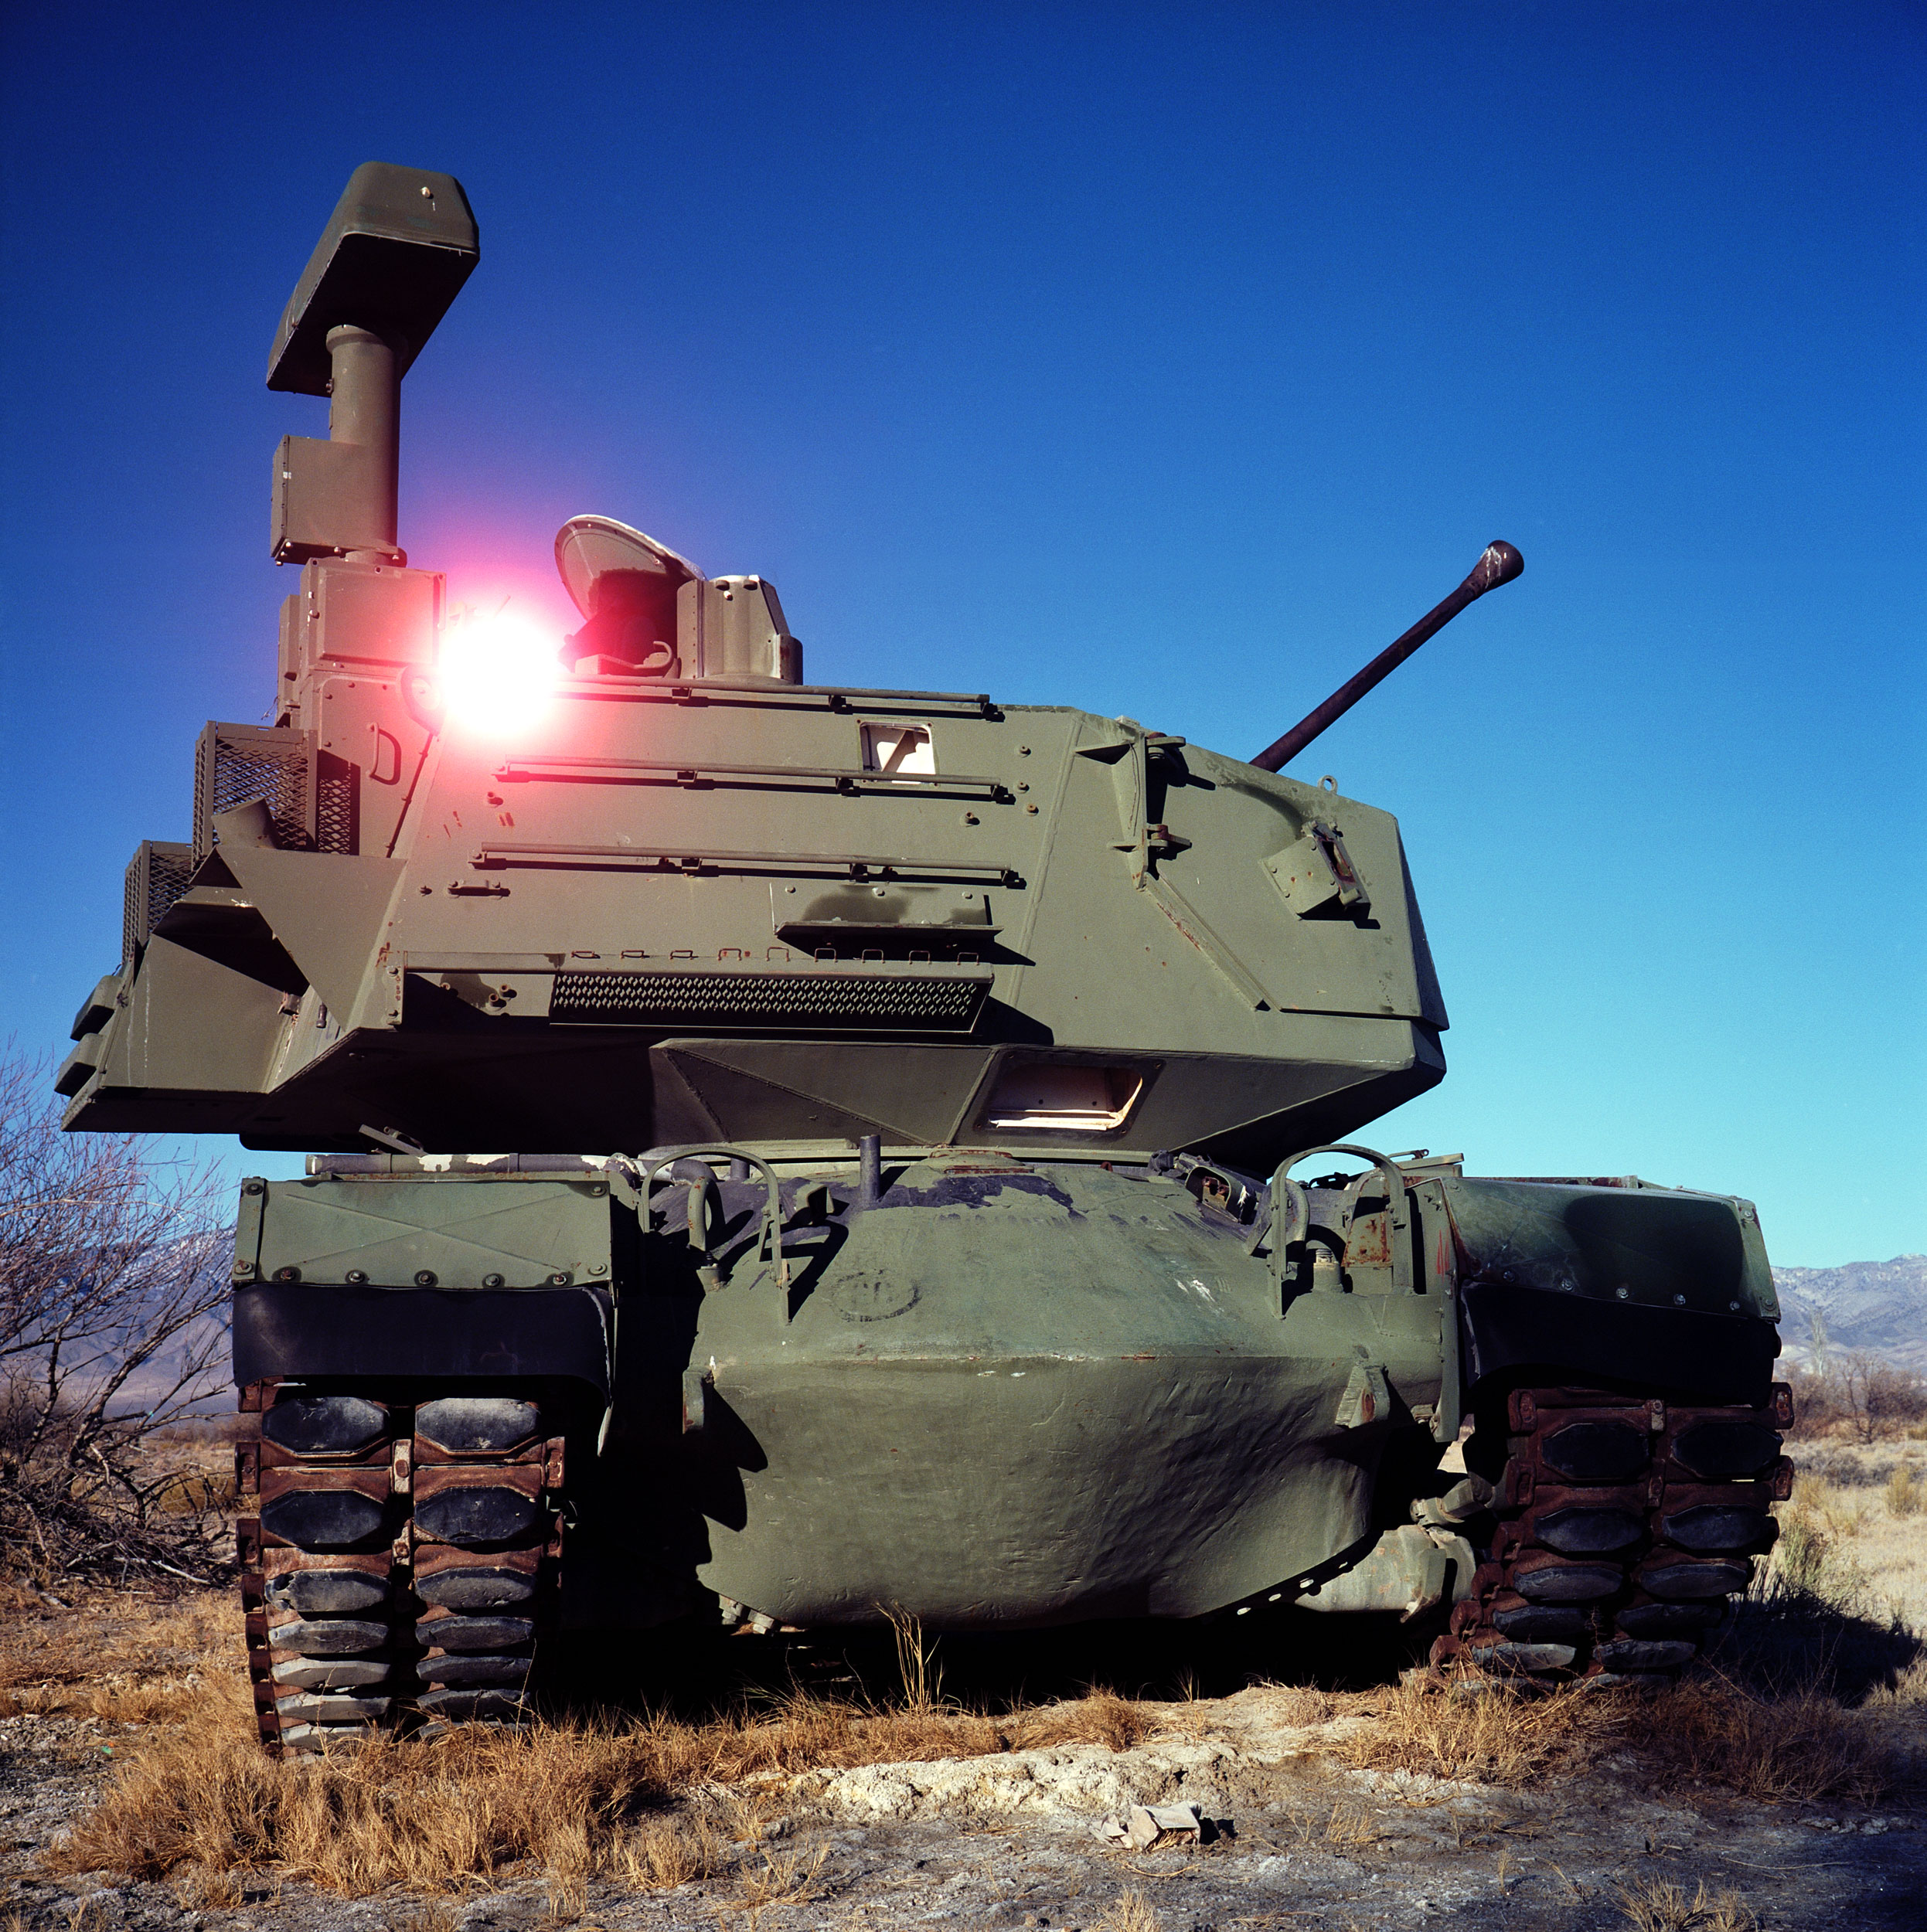 "A demilitarized tank sits at the Dixie Valley Naval Training Area. Dixie Valley was a small ranching community outside of Fallon, Nevada that was acquired by the US Navy for electronic warfare simulation in 1995. While most of the area is publicly accessible, a sign near the entrance states ""The land beyond this sign is used by NAS Fallon for military training. Low flying aircraft, military vehicles and personnel may be using flares, smoke/simulator grenades, and blank fire ordinance on this area at any time."" Needless to say, I wasn't attacked while I was there. The area was quiet and vast. While researching the area, where other demilitarized vehicles and radar stations are spread across the valley, it was suggested that Dixie Valley was used to mock an invasion by a foreign power on American soil. Also, the Navy's ""TOPGUN"" program (Naval Fighter Weapons Program), moved from Miramar, California to the area a year after Dixie Valley was acquired. If anyone has an idea of what kind of tank this is, please let me know in the comments!"